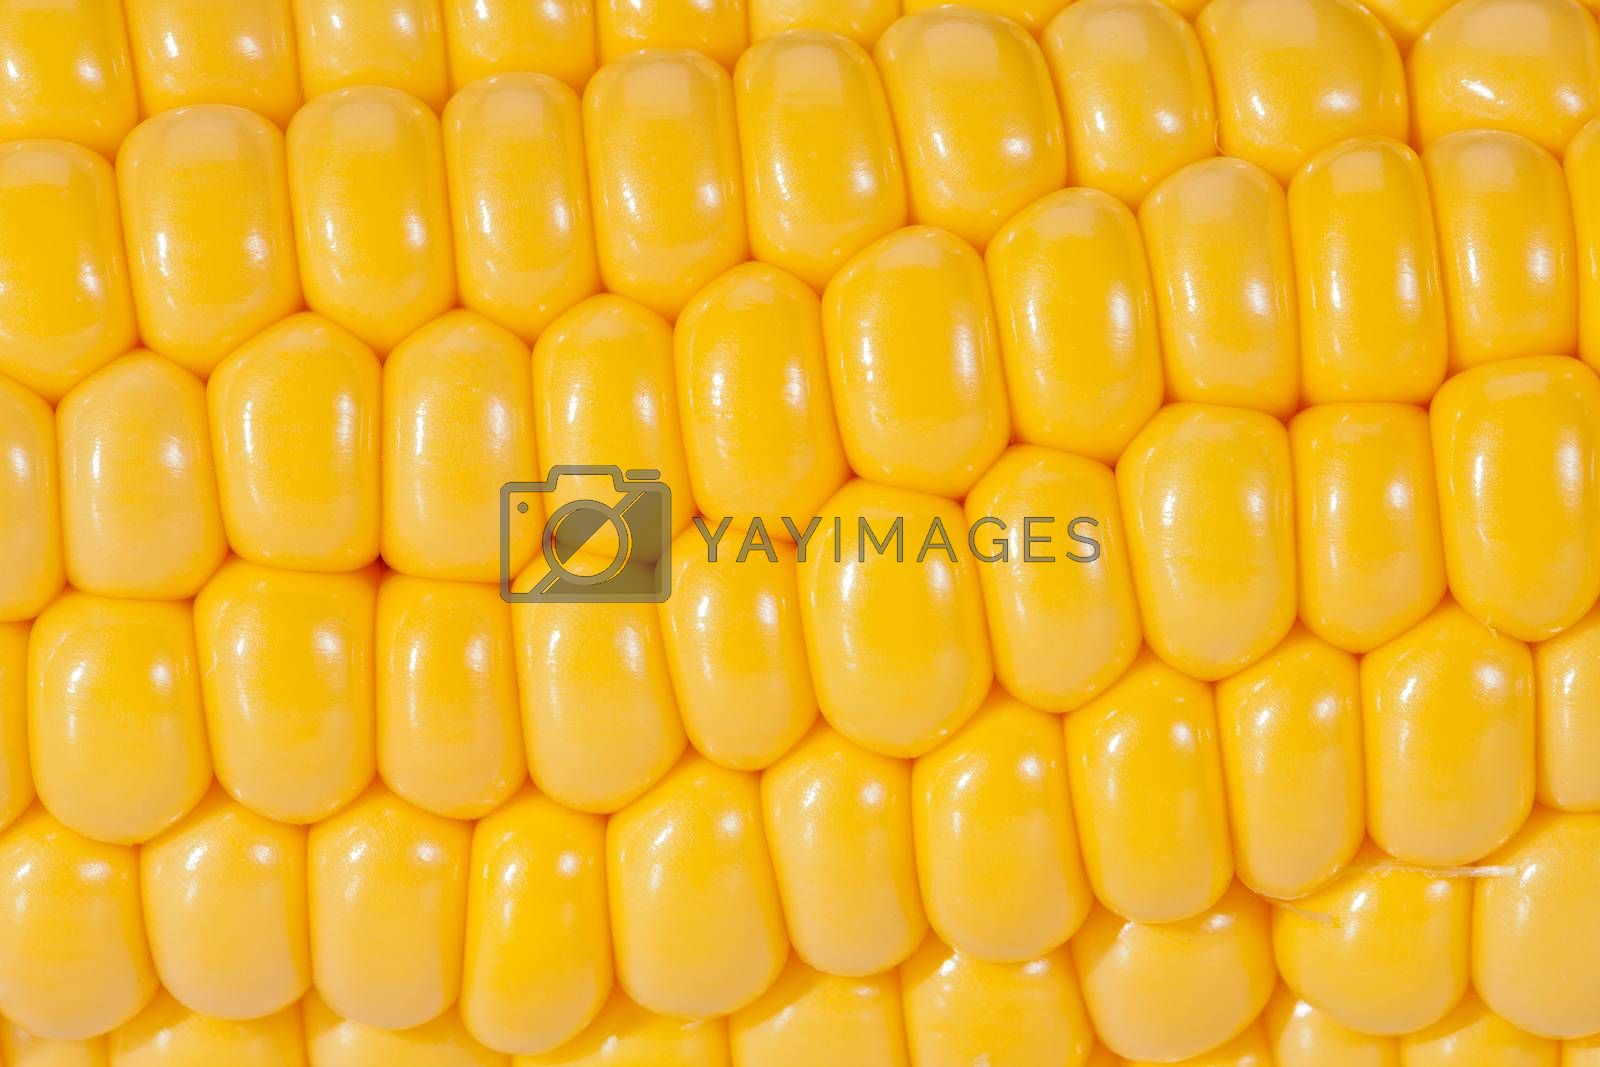 Royalty free image of background of yellow corn grains on the colb macro by mychadre77